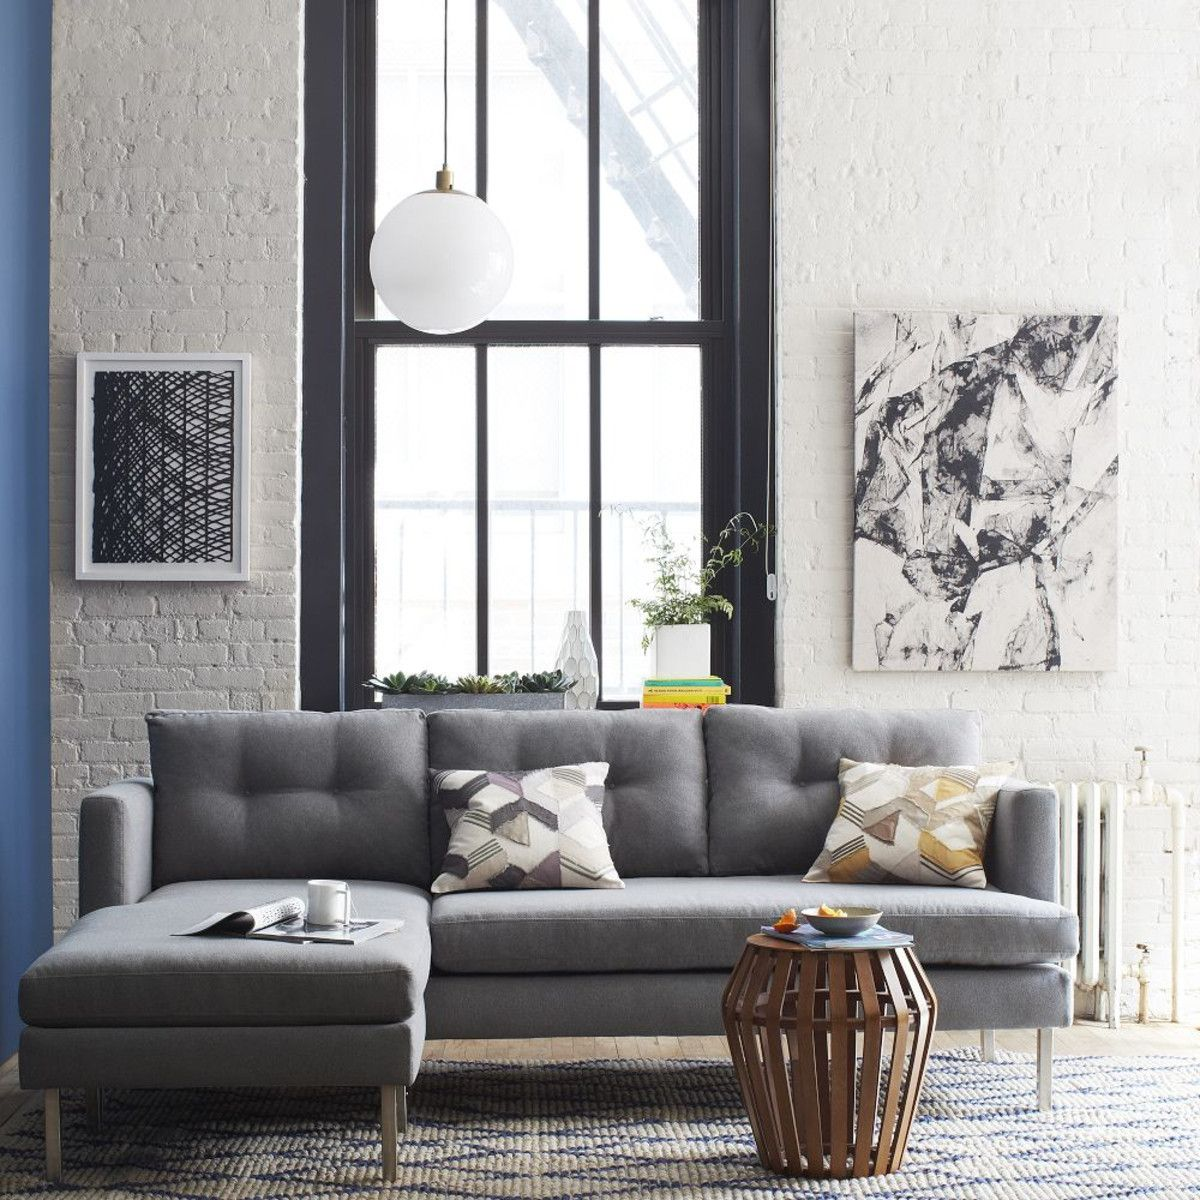 jackson 2 piece chaise sectional heather grey aud1809 west elm rh pinterest com west elm jackson sofa Bergen West Elm